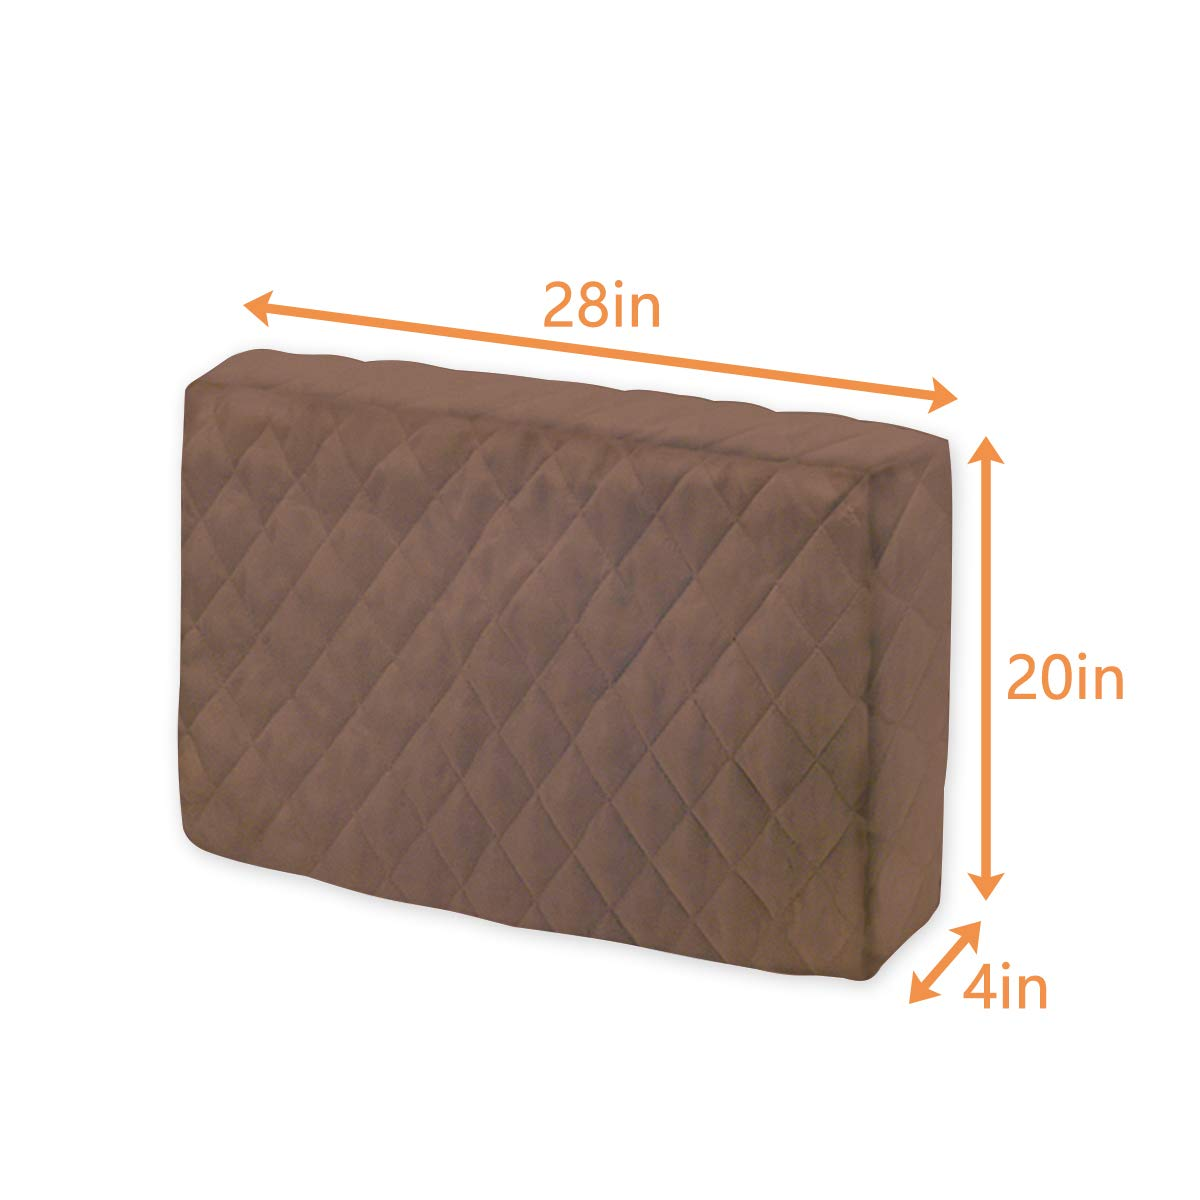 Double Insulation Windblock LBG Products Indoor Air Conditioner Cover for Window A//C Unit,Brown Color 21L x 14H x 4D